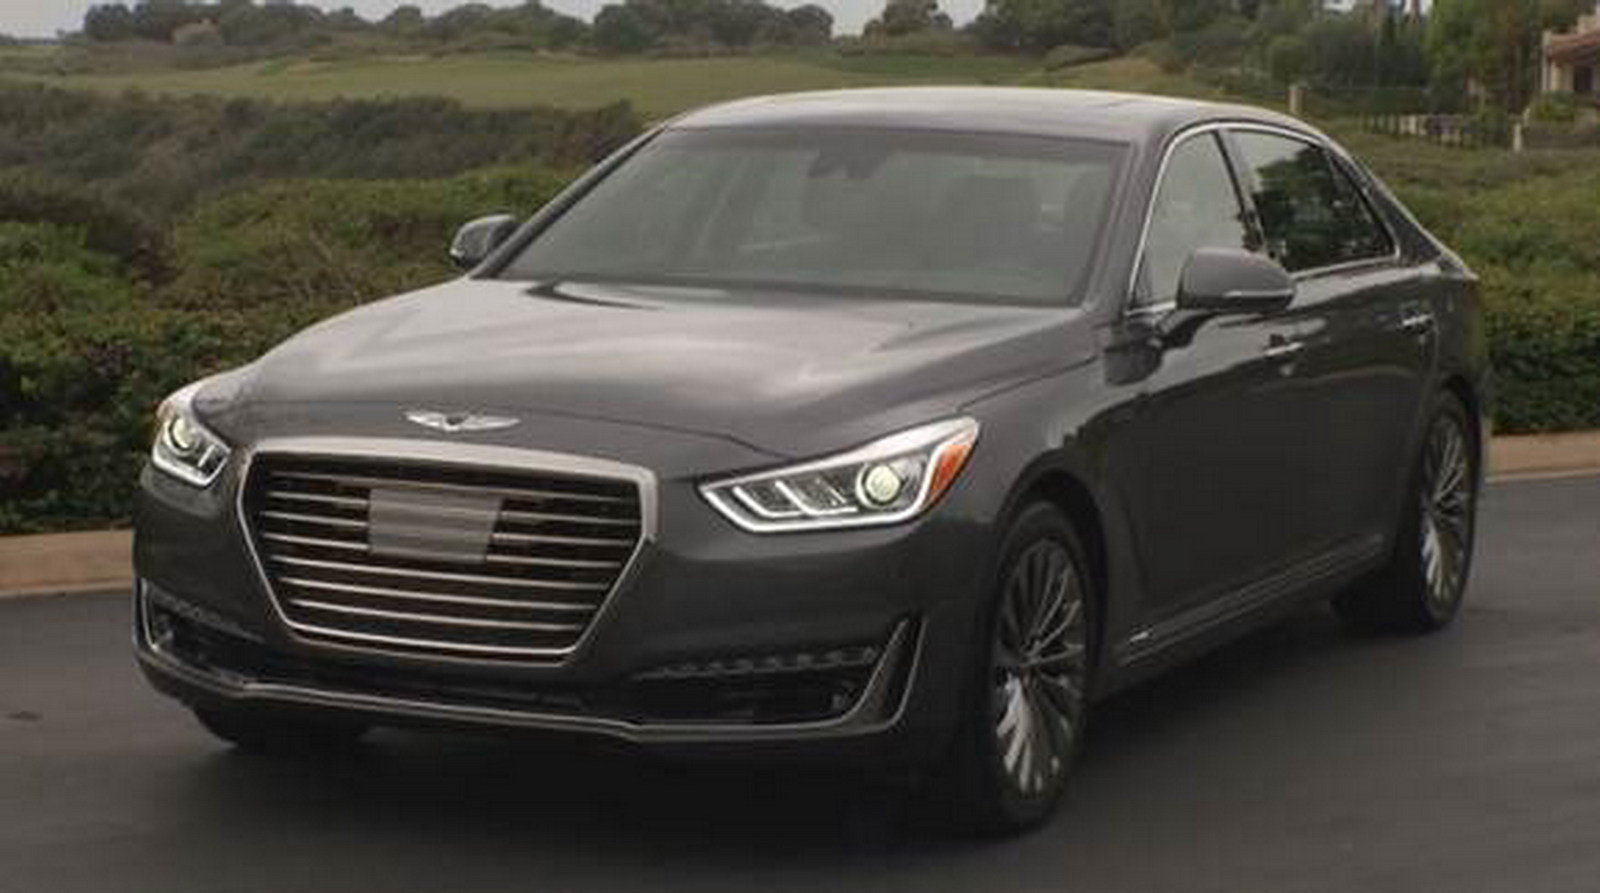 2017 genesis g90 picture 661892 car review top speed. Black Bedroom Furniture Sets. Home Design Ideas